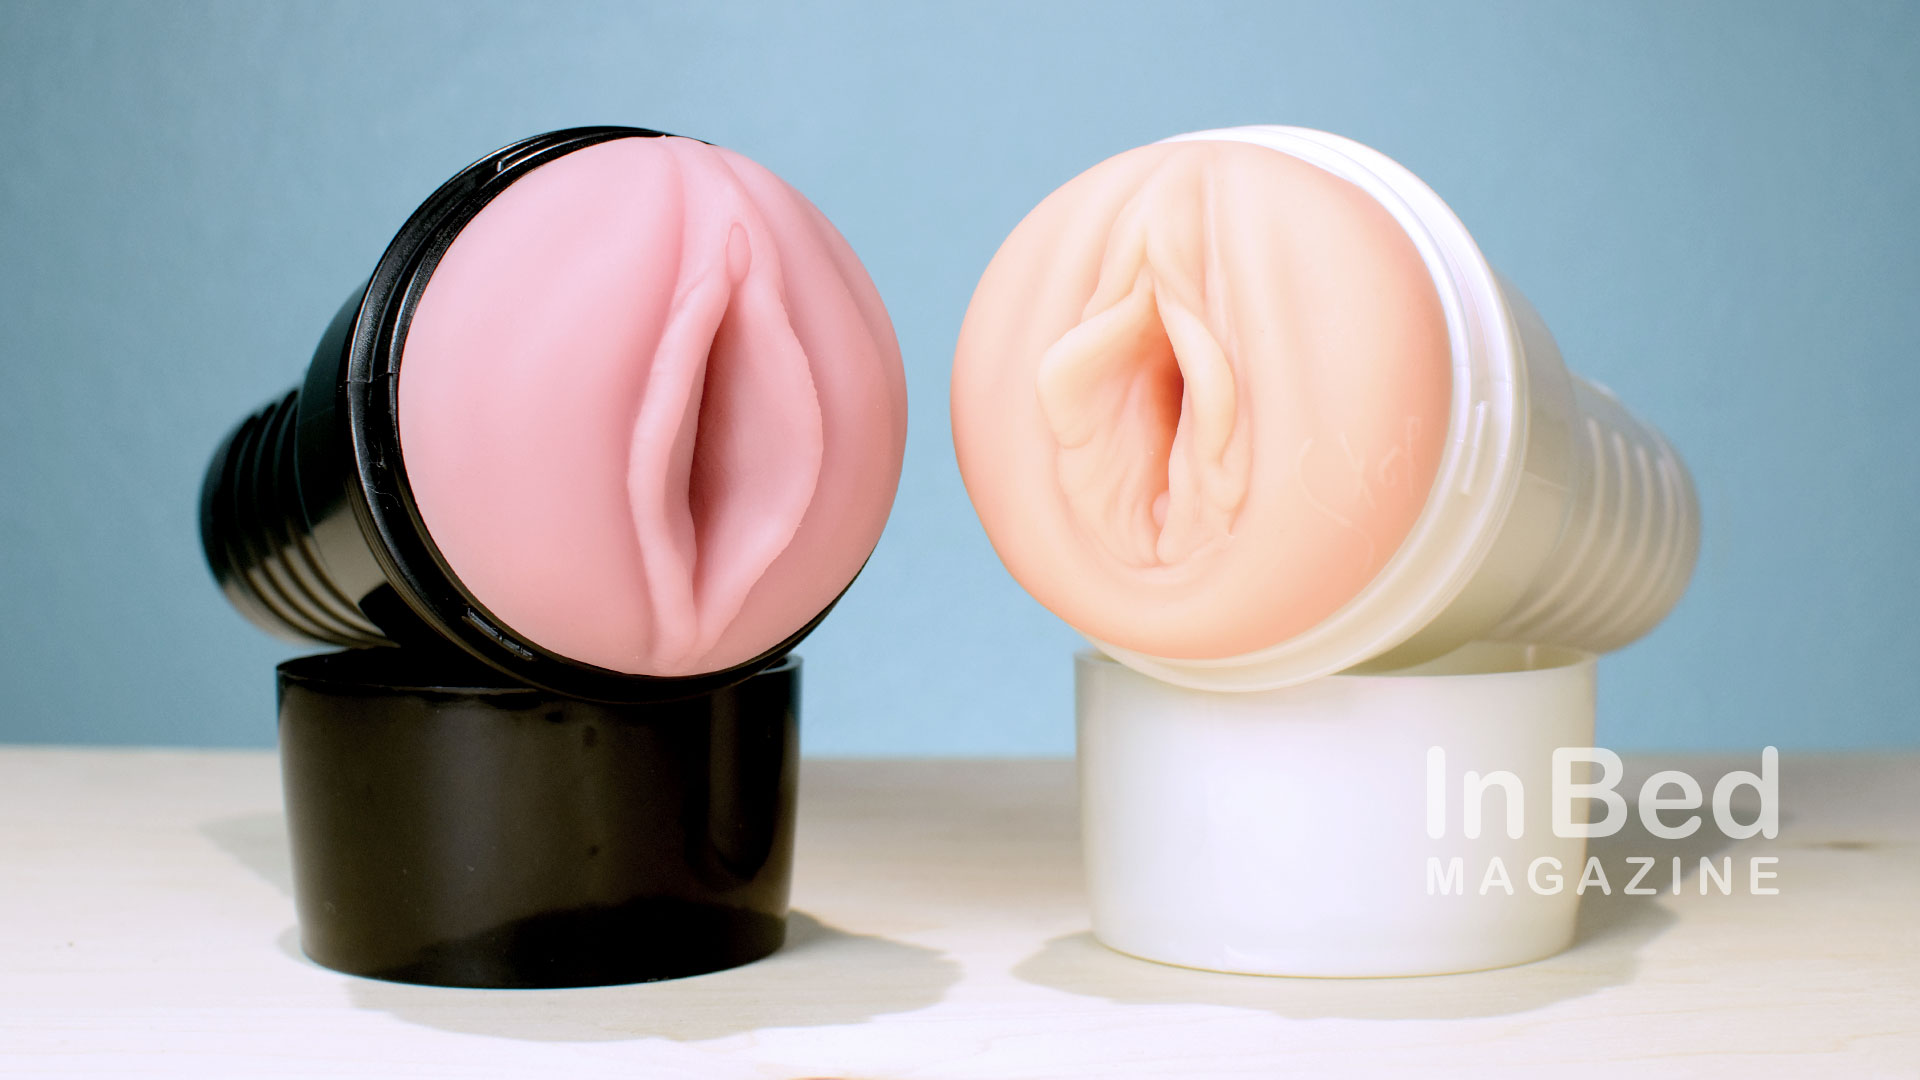 Fleshlight Launch Phone Vr Sync